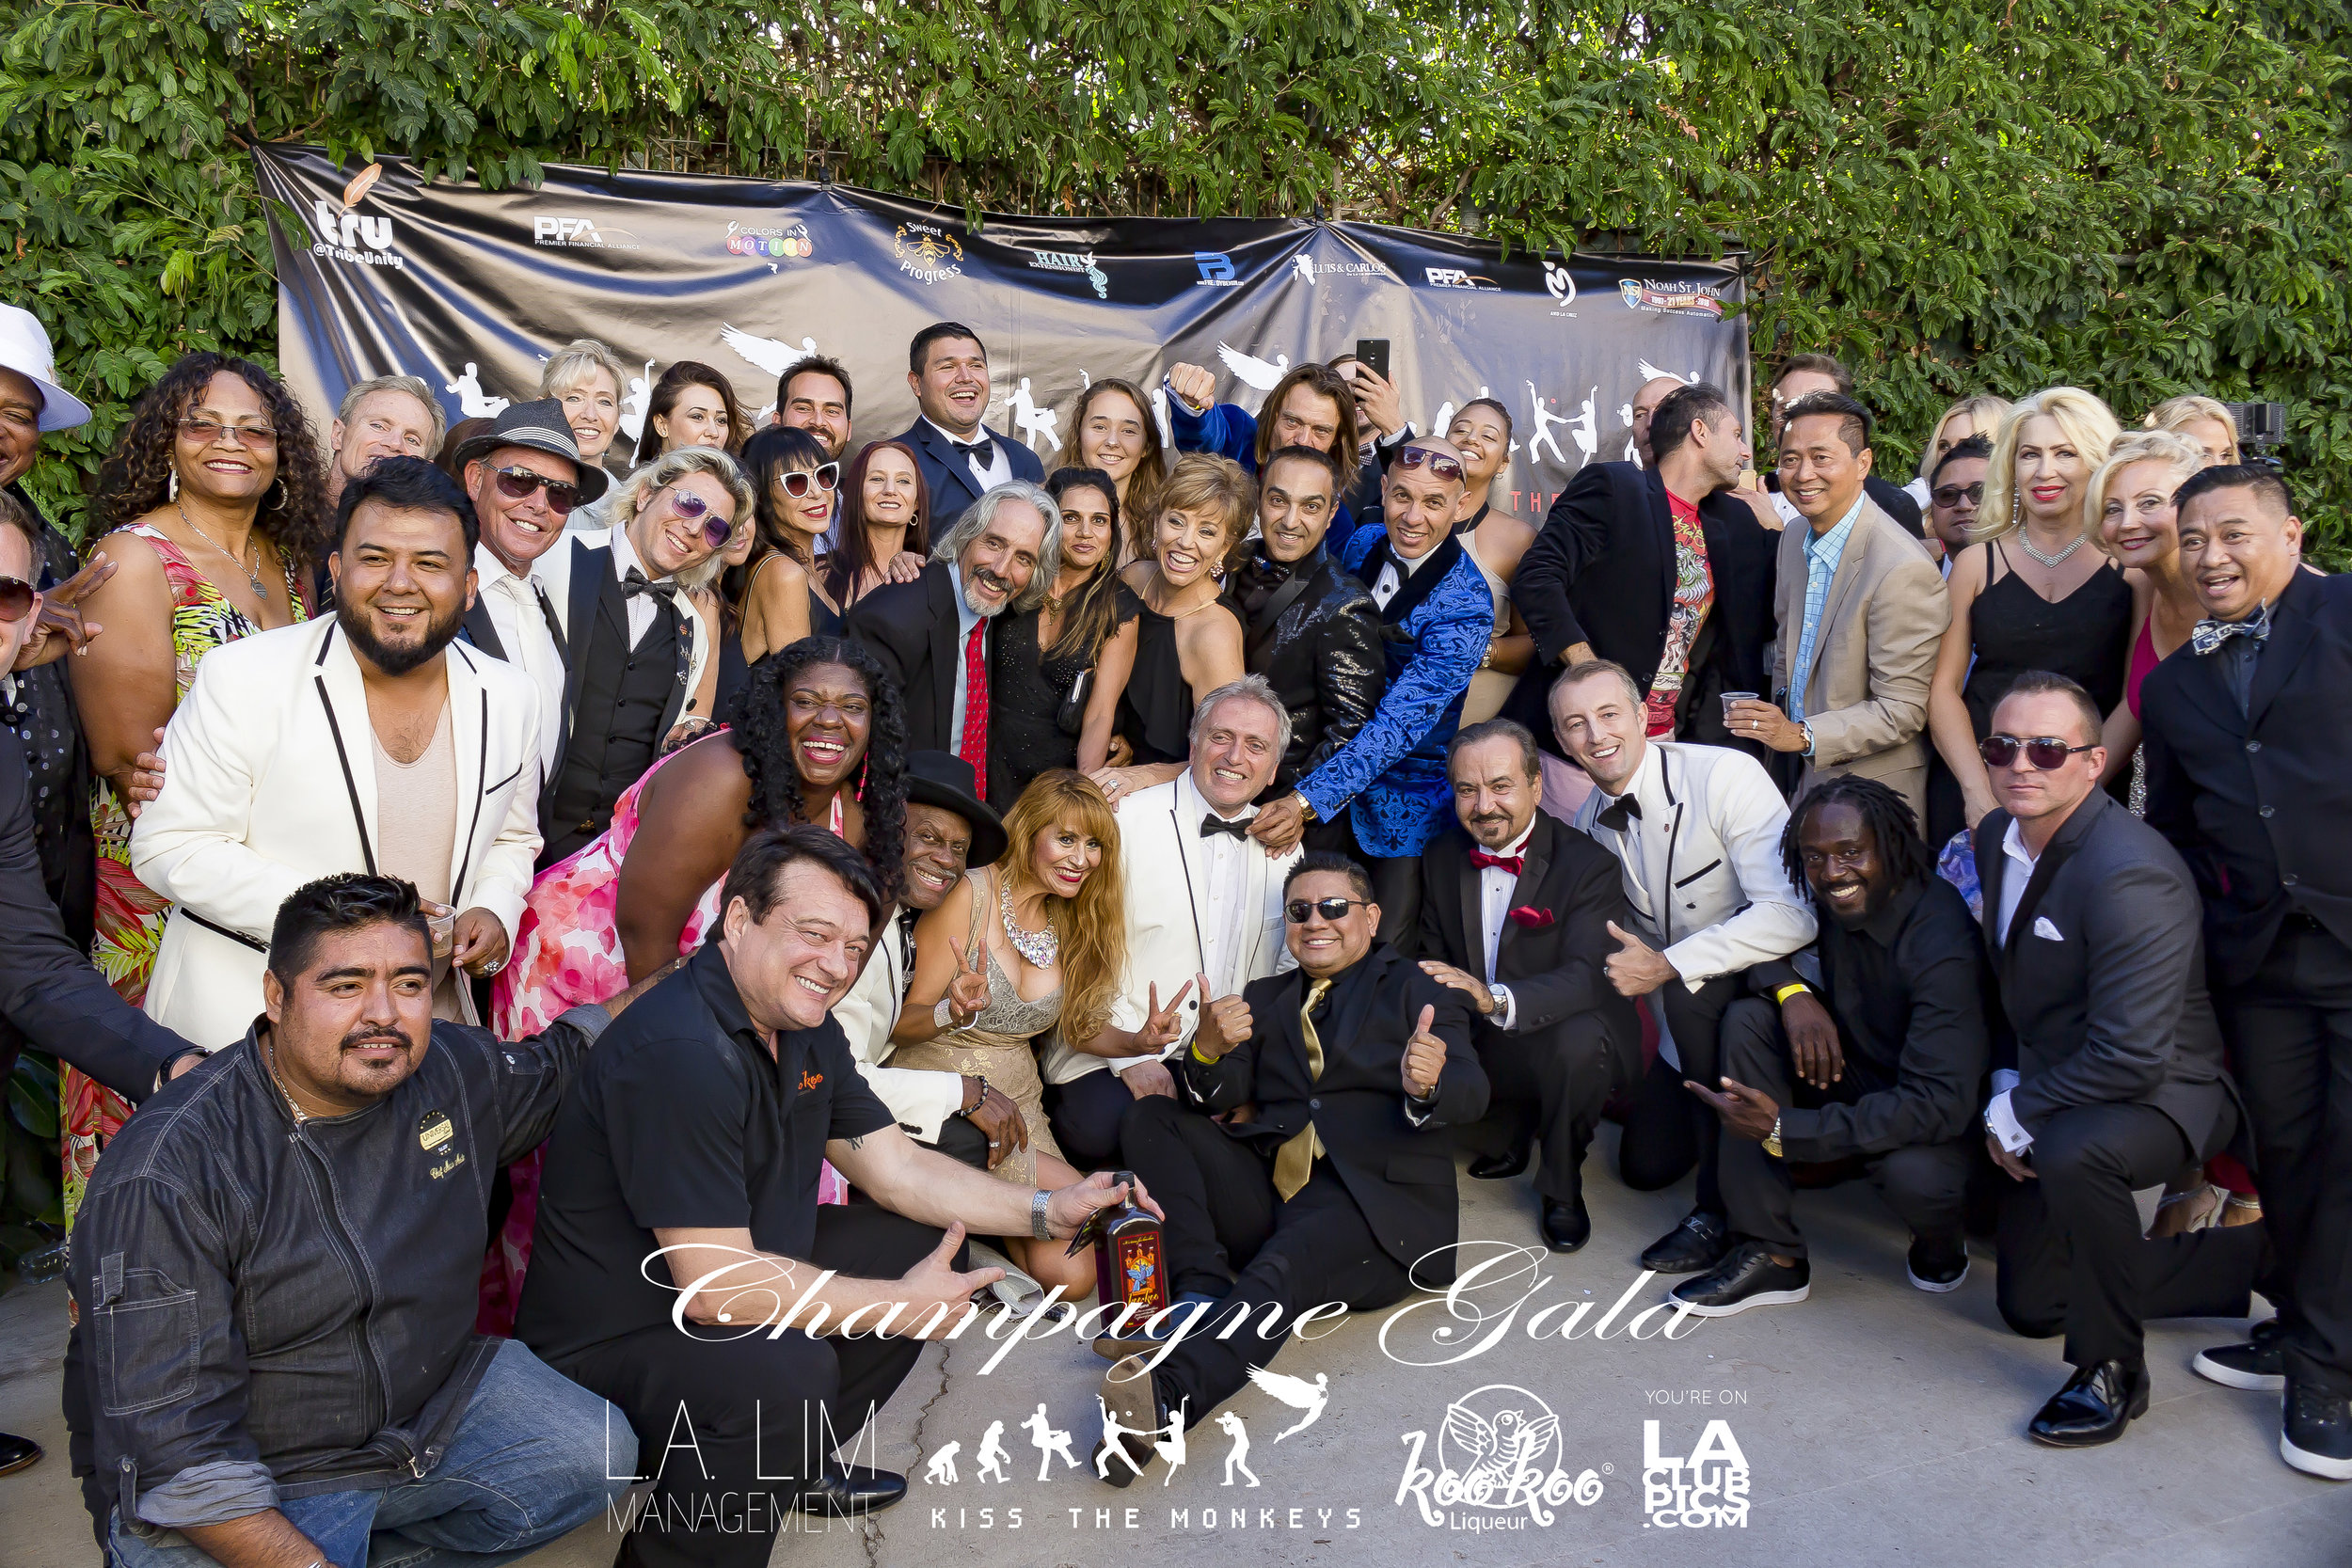 Kiss The Monkeys - Champagne Gala - 07-21-18_57.jpg